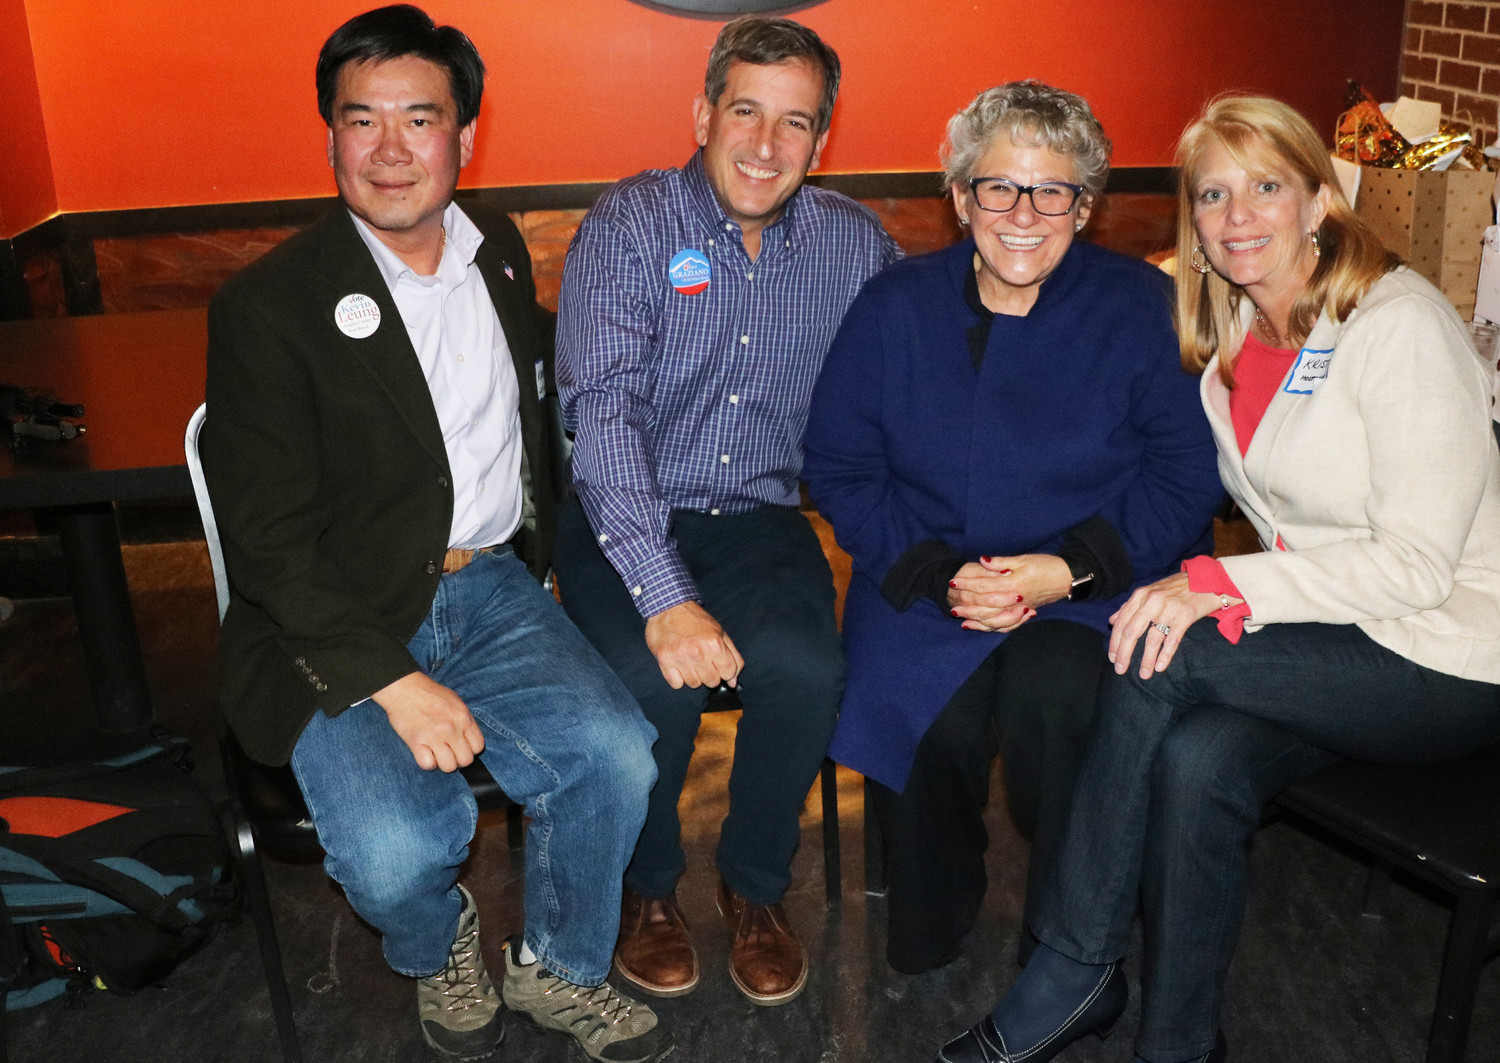 """commUNITY"" candidates, from left, Kevin Leung, Anthony Graziano, Chris Schor and Krista Holtzmann, celebrate their victory in the Douglas County School Board election at a viewing party on Nov. 7 at On the Rox near Lincoln Avenue and I-25. Photo by Alex DeWind"